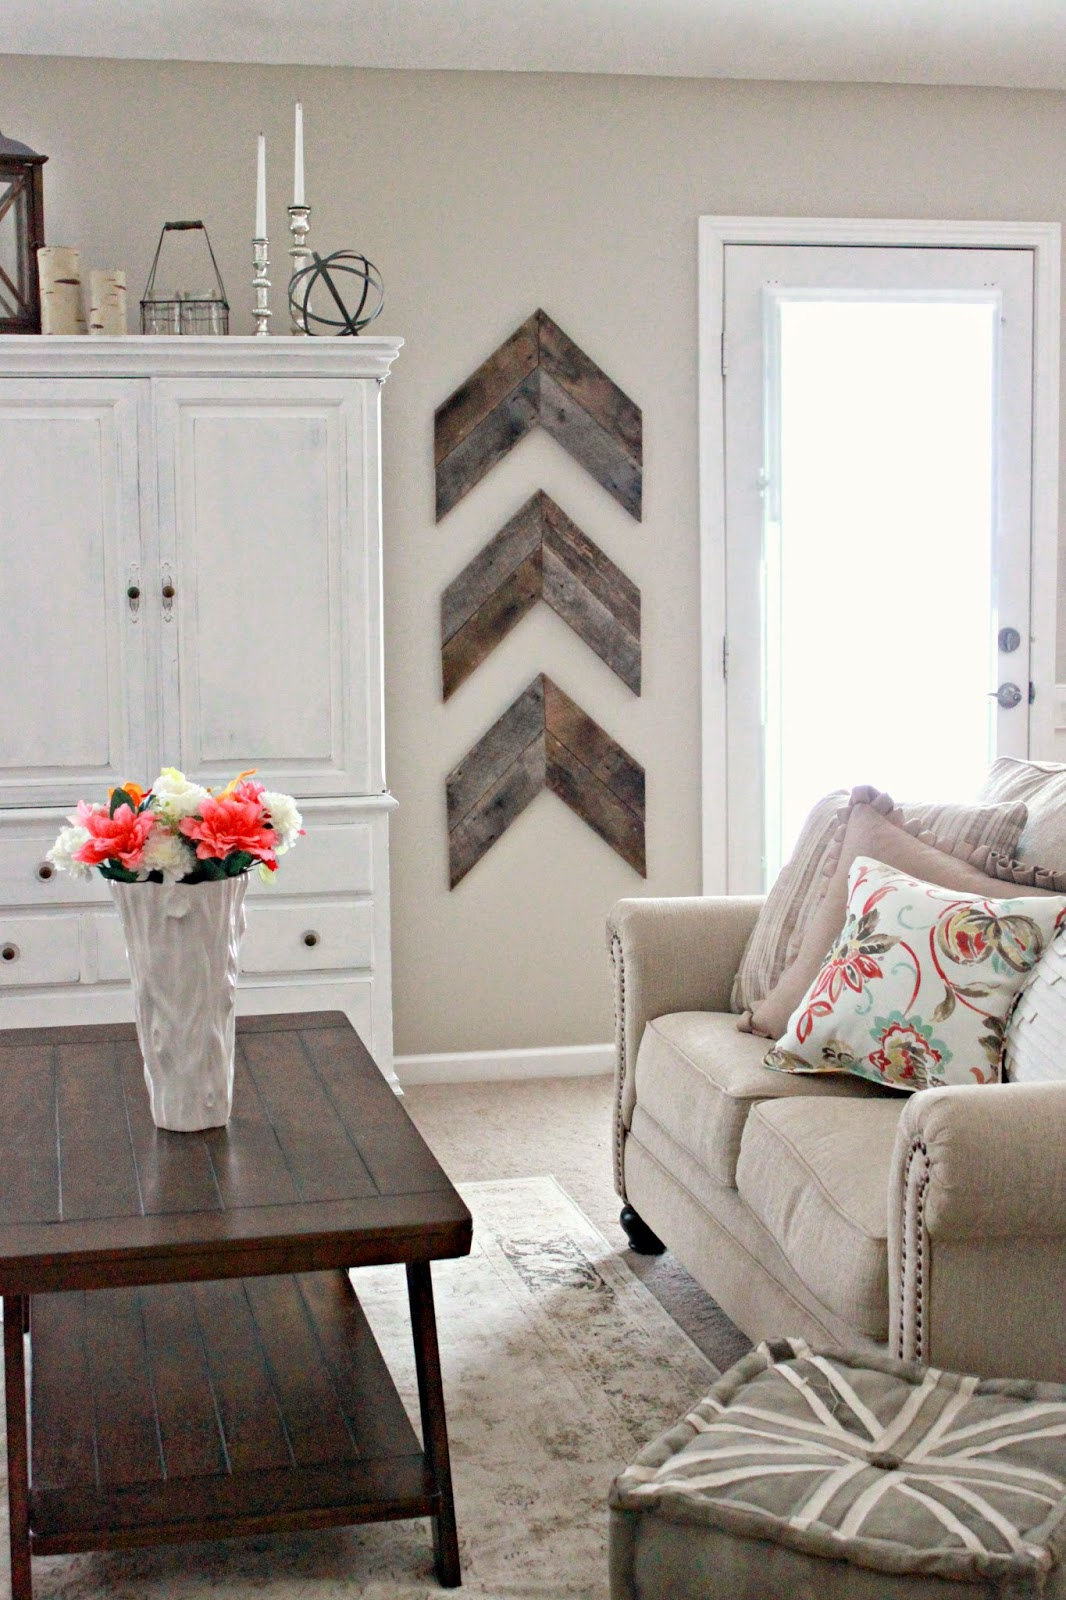 DIY wooden arrows bring some interesting wall art to this living room